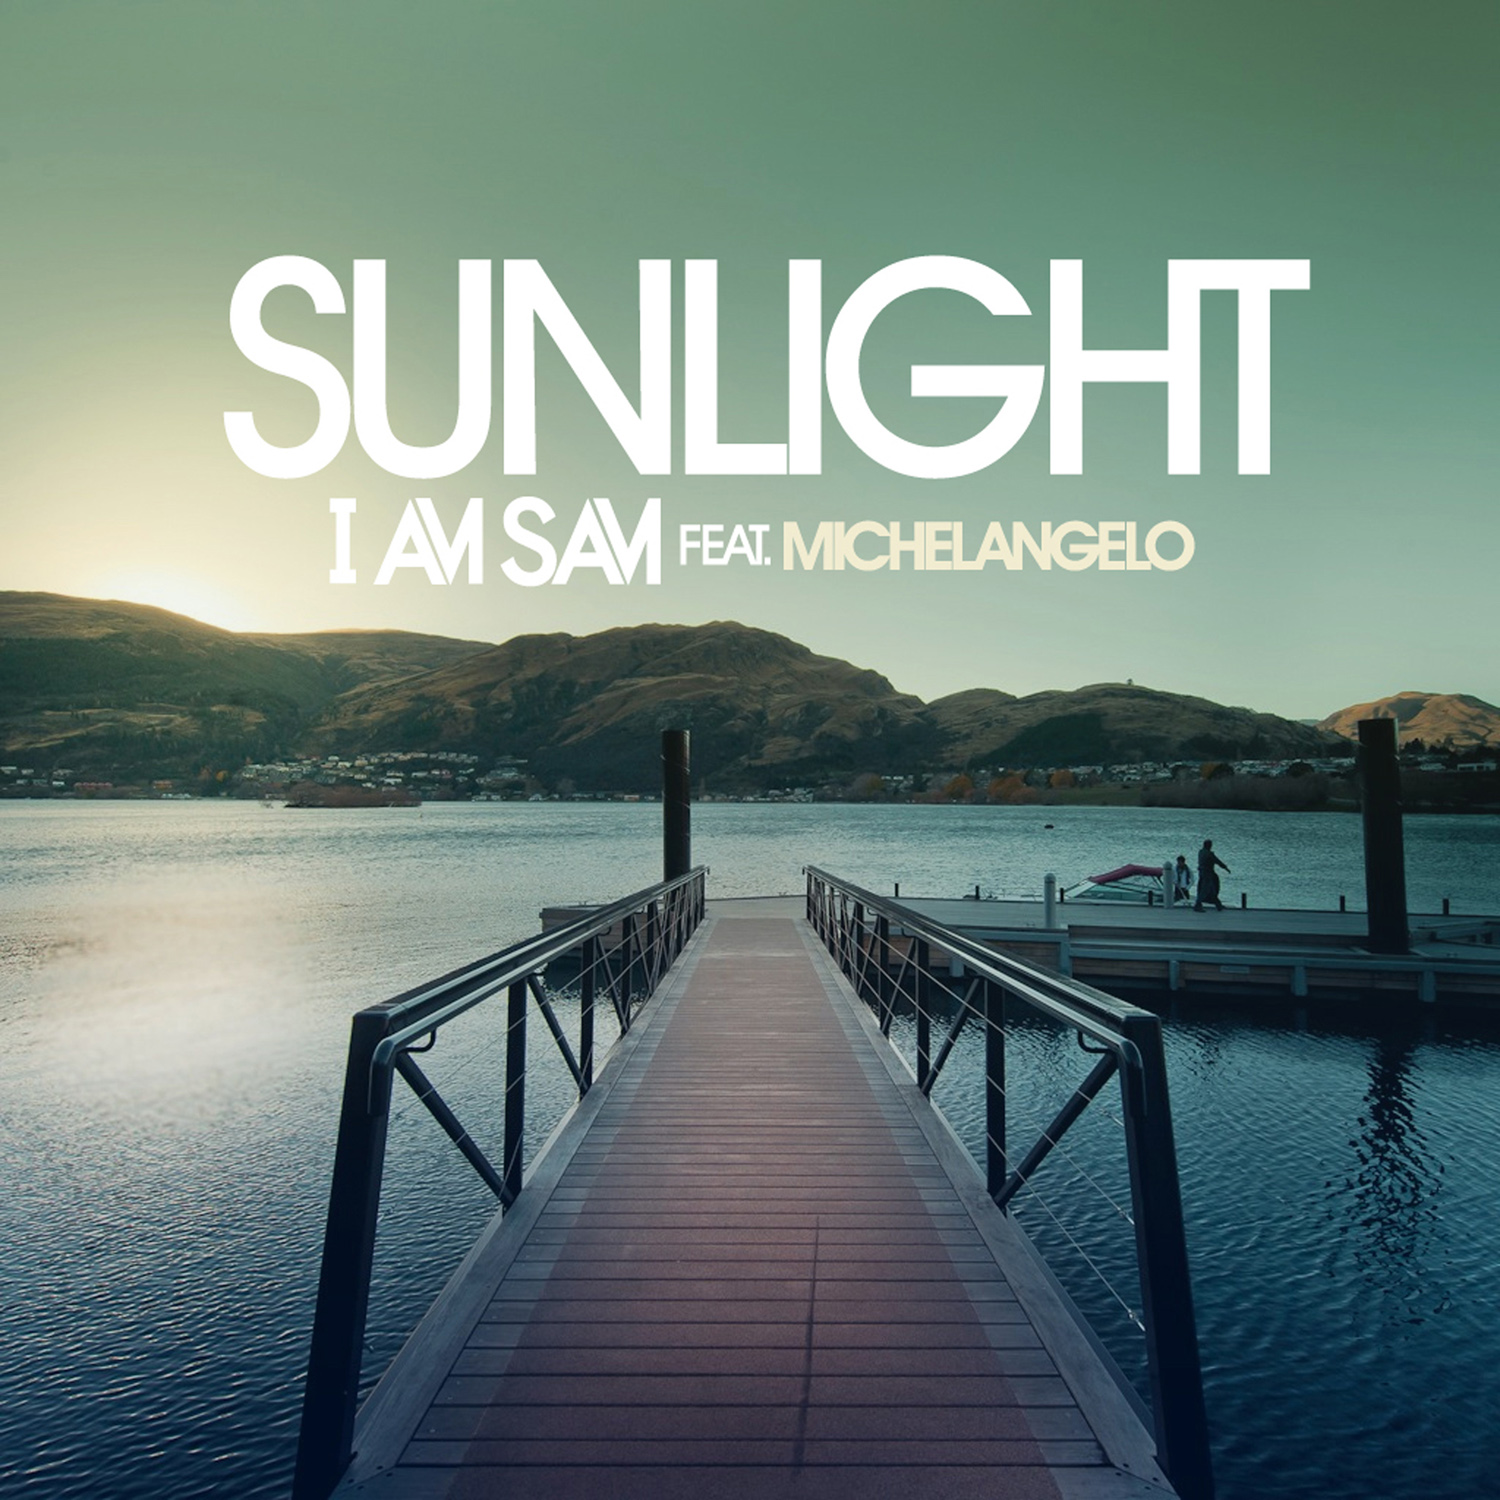 I Am Sam feat. Michelangelo – Sunlight (Original Mix)